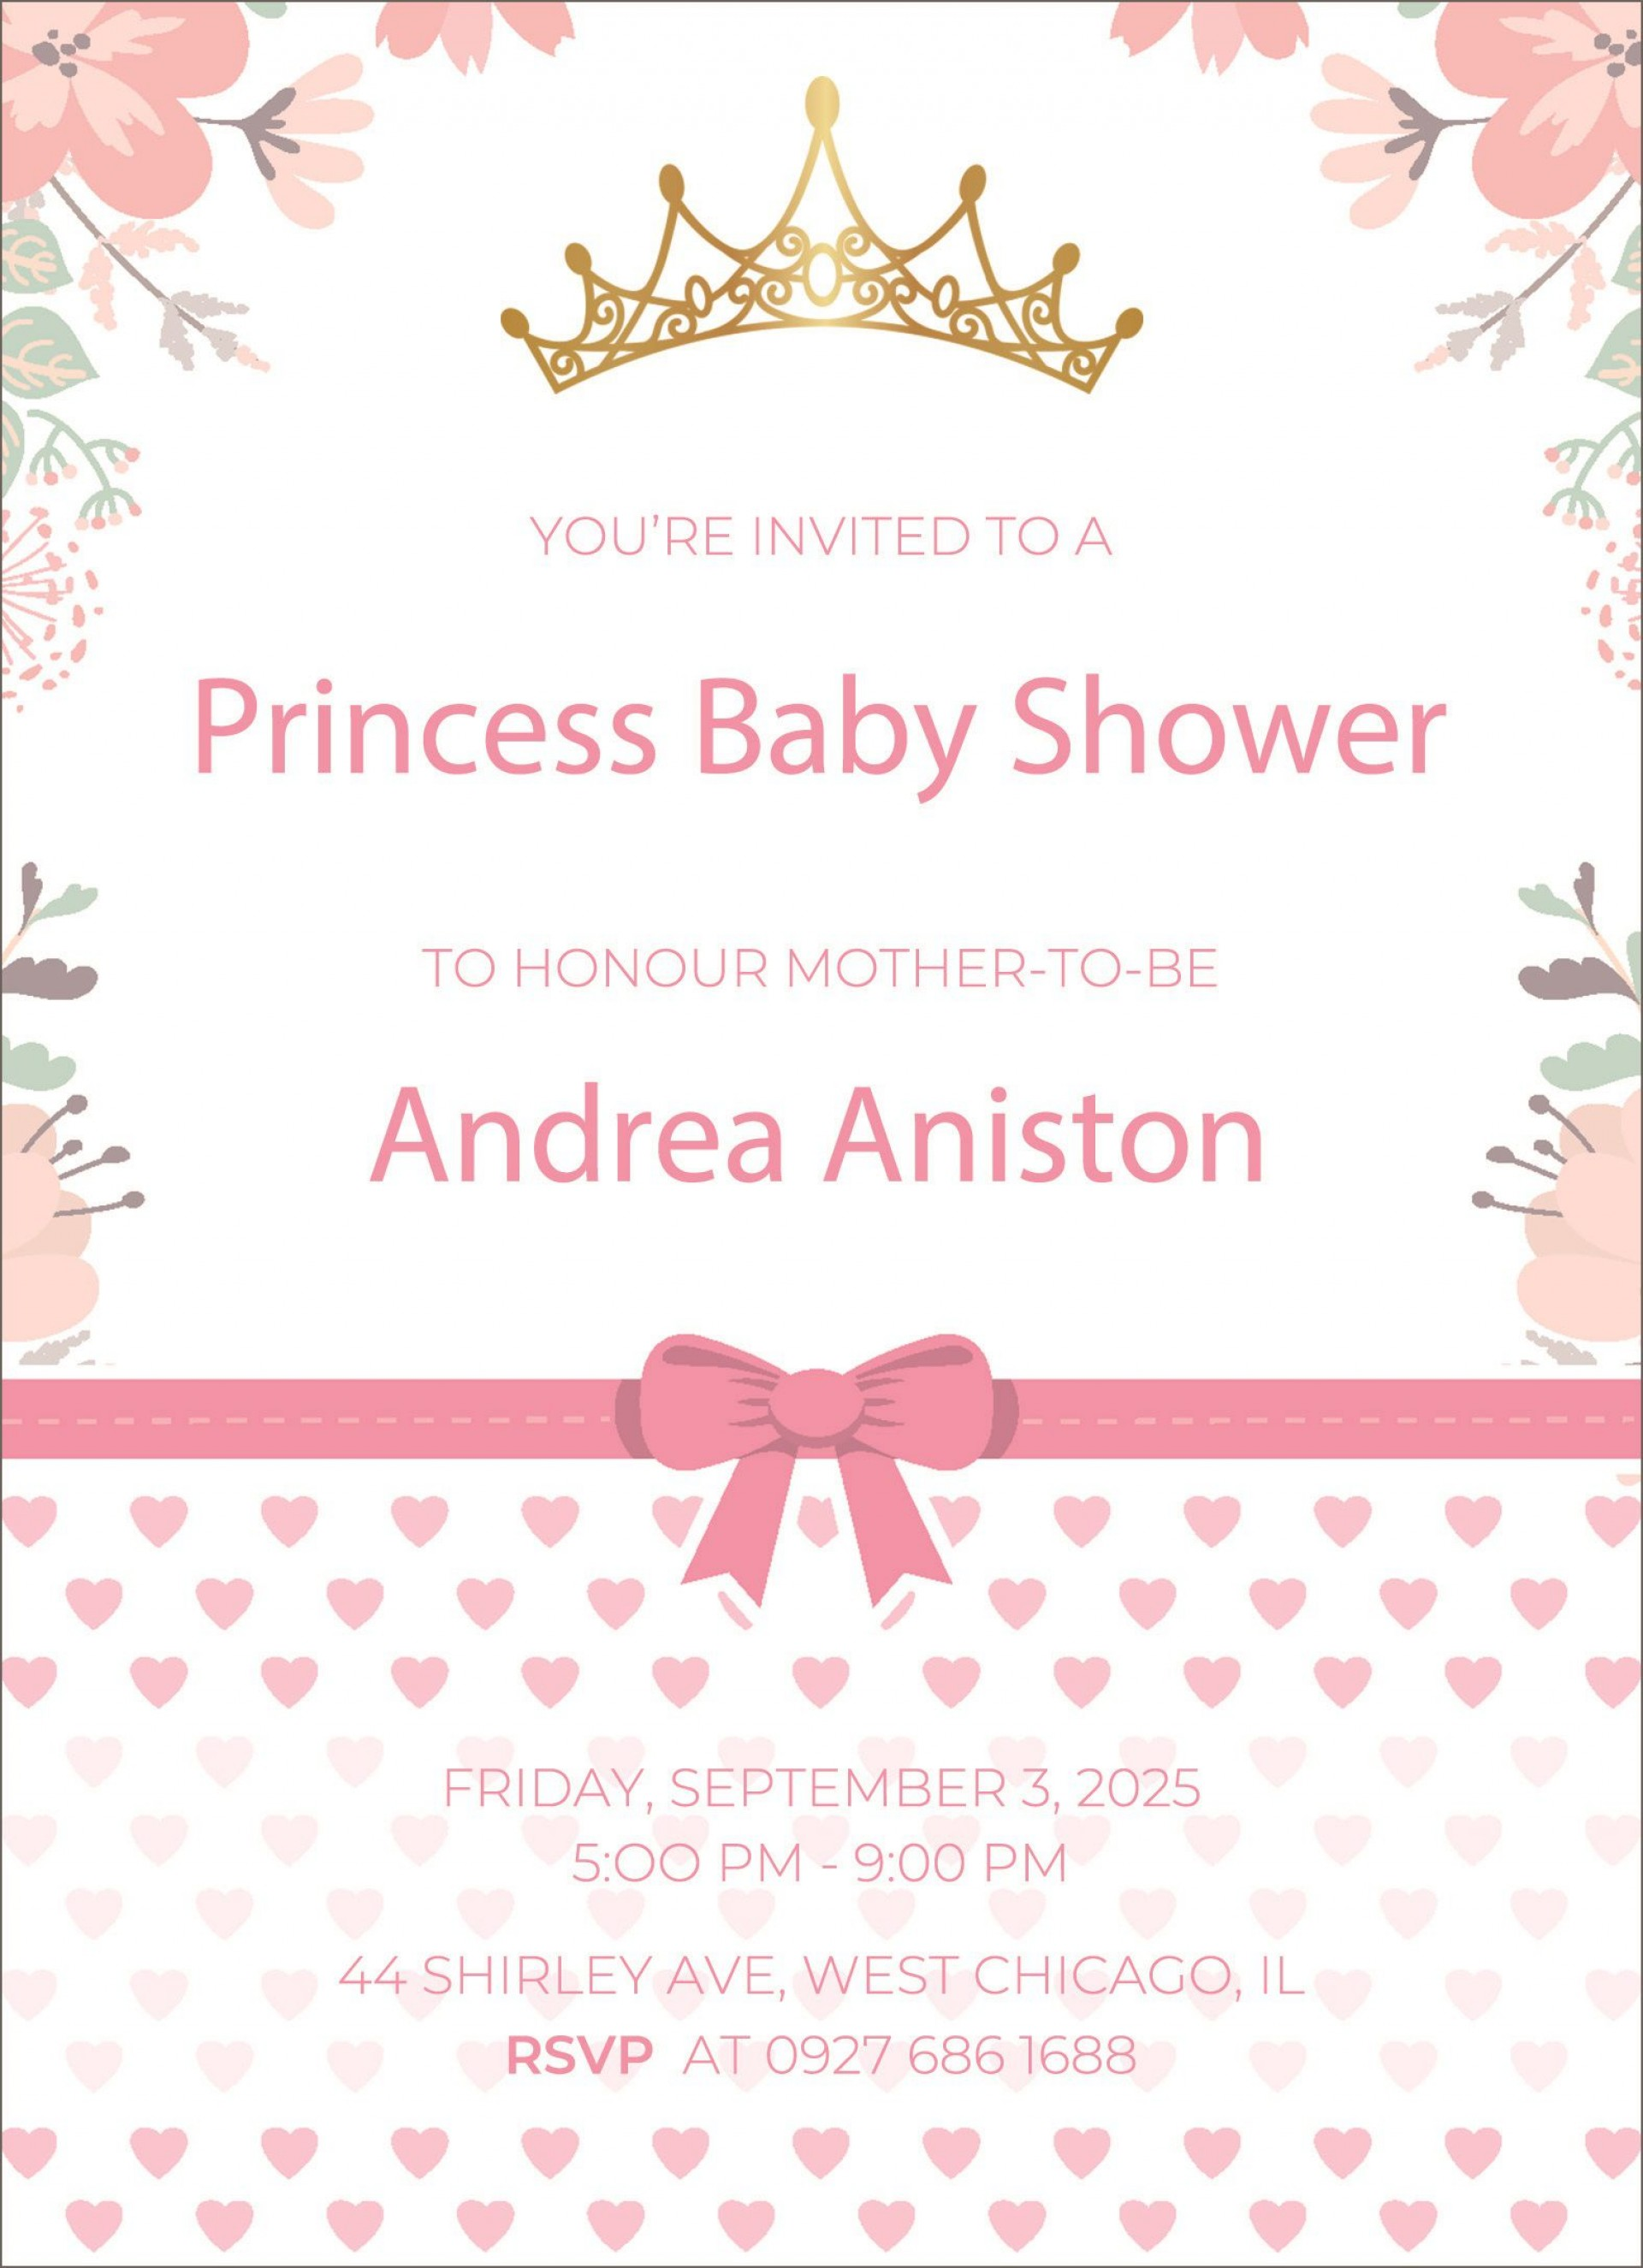 003 Formidable Baby Shower Invitation Free Template Picture  Templates Online Printable E-invitation Card Design Download1920